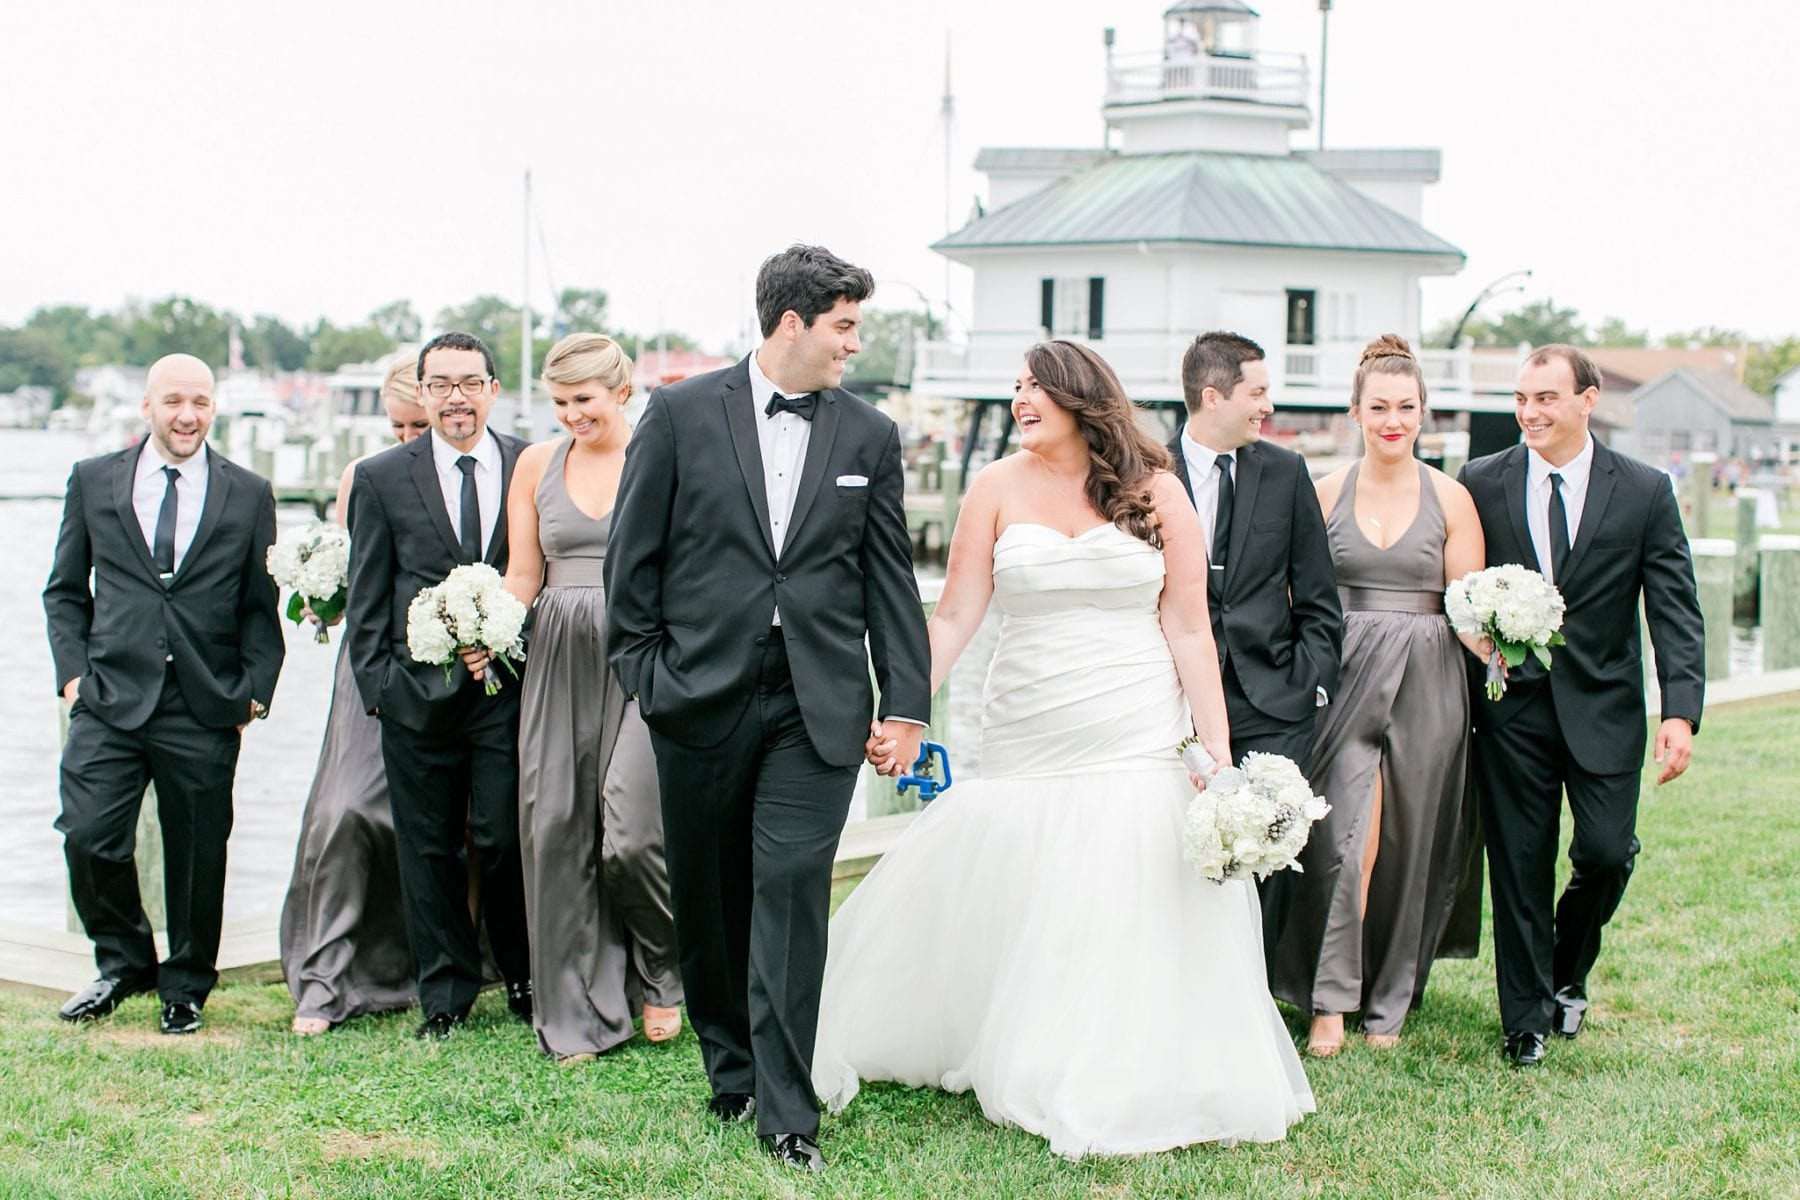 Chesapeake Bay Maritime Museum Wedding Photos Maryland Wedding Photographer Megan Kelsey Photography Halie & Mike-75.jpg